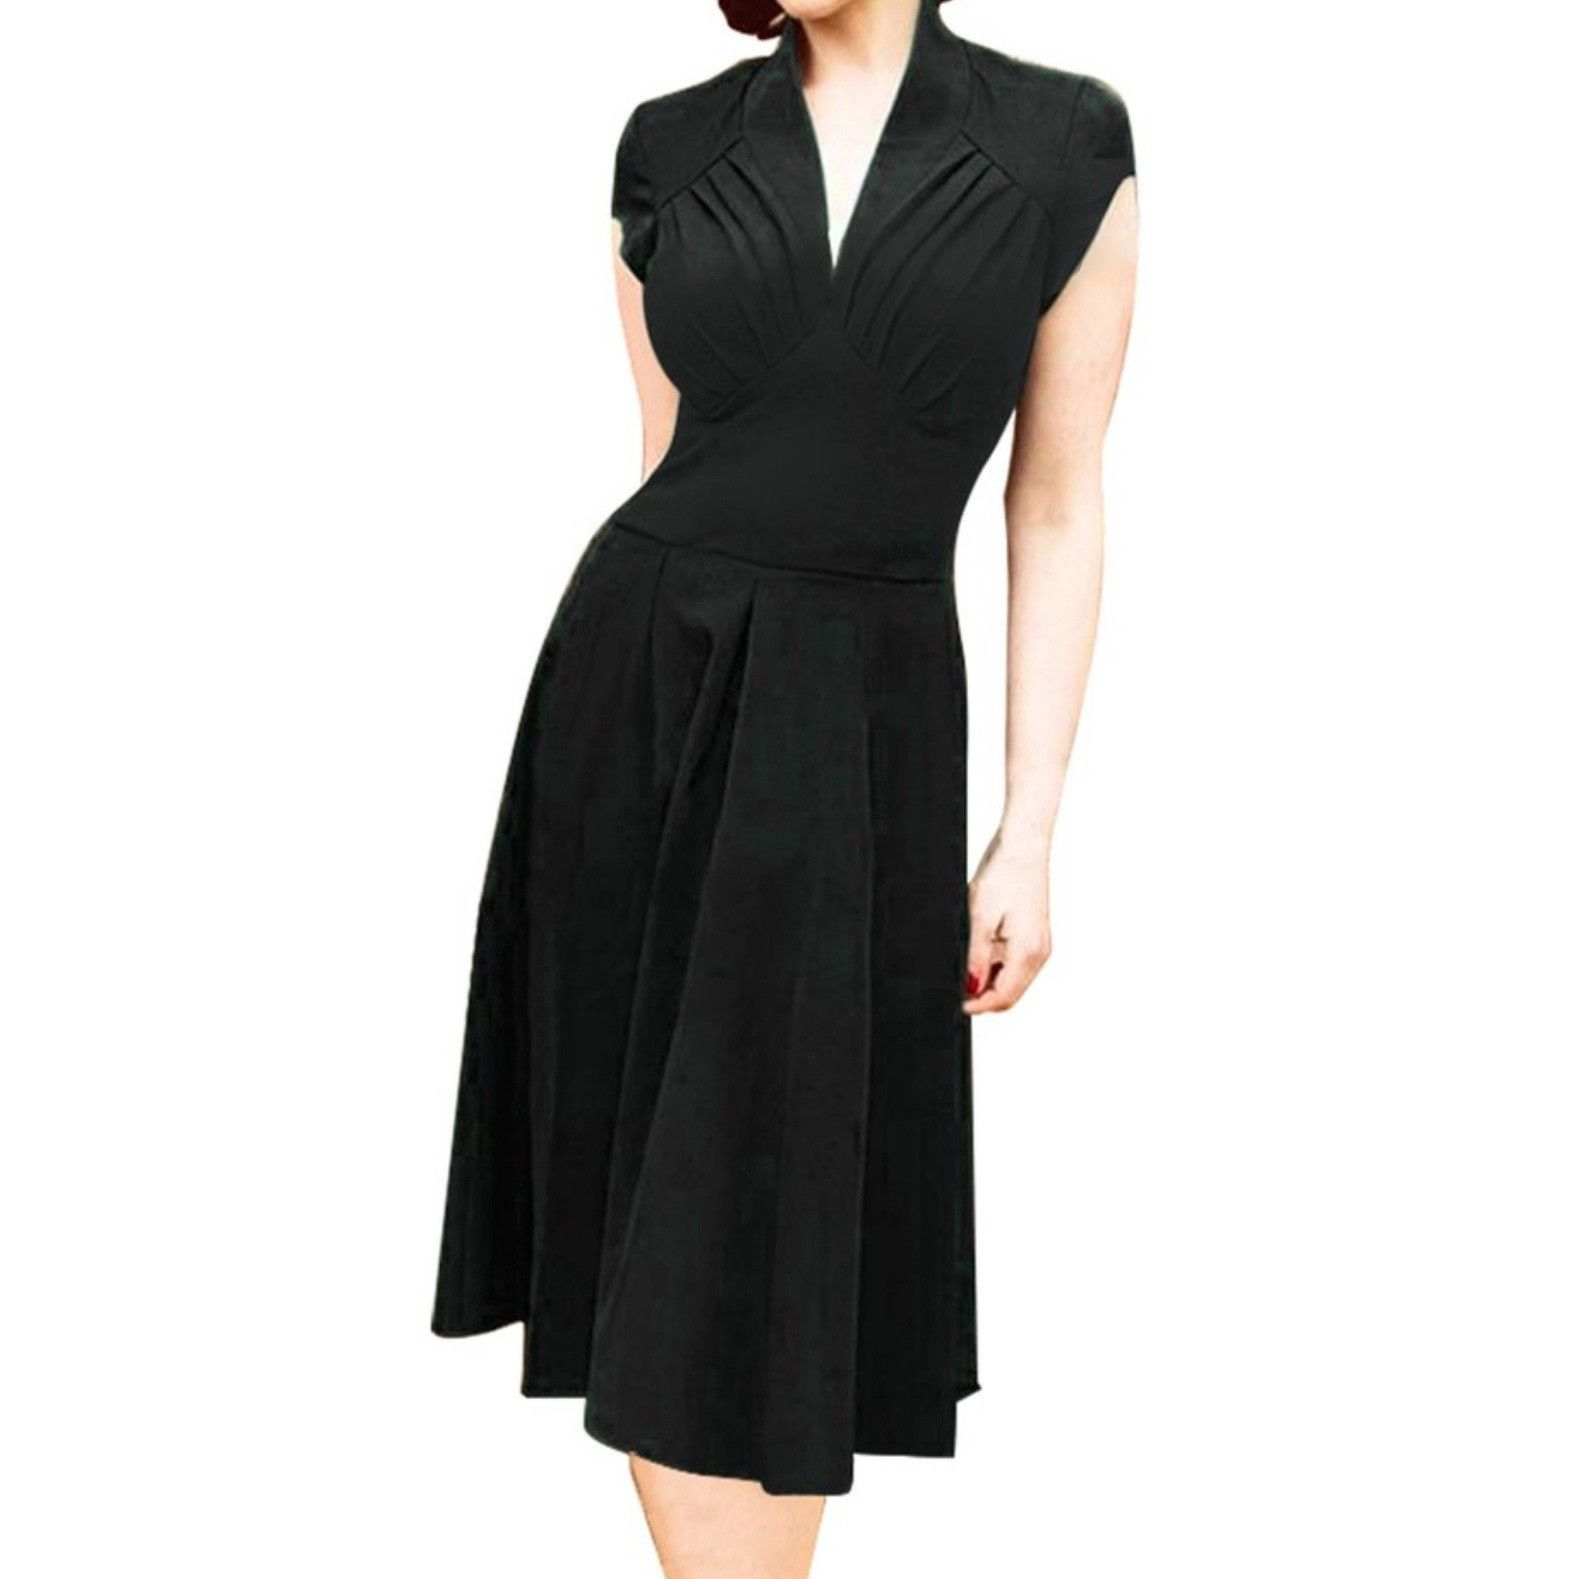 5194fdcf45ade0 Sultry 1940s-inspired raven a-line dress with a deep v neckline, ruched  bodice and wide high waist. Lovely cap sleeves, softly pleated skirt.  Unlined.